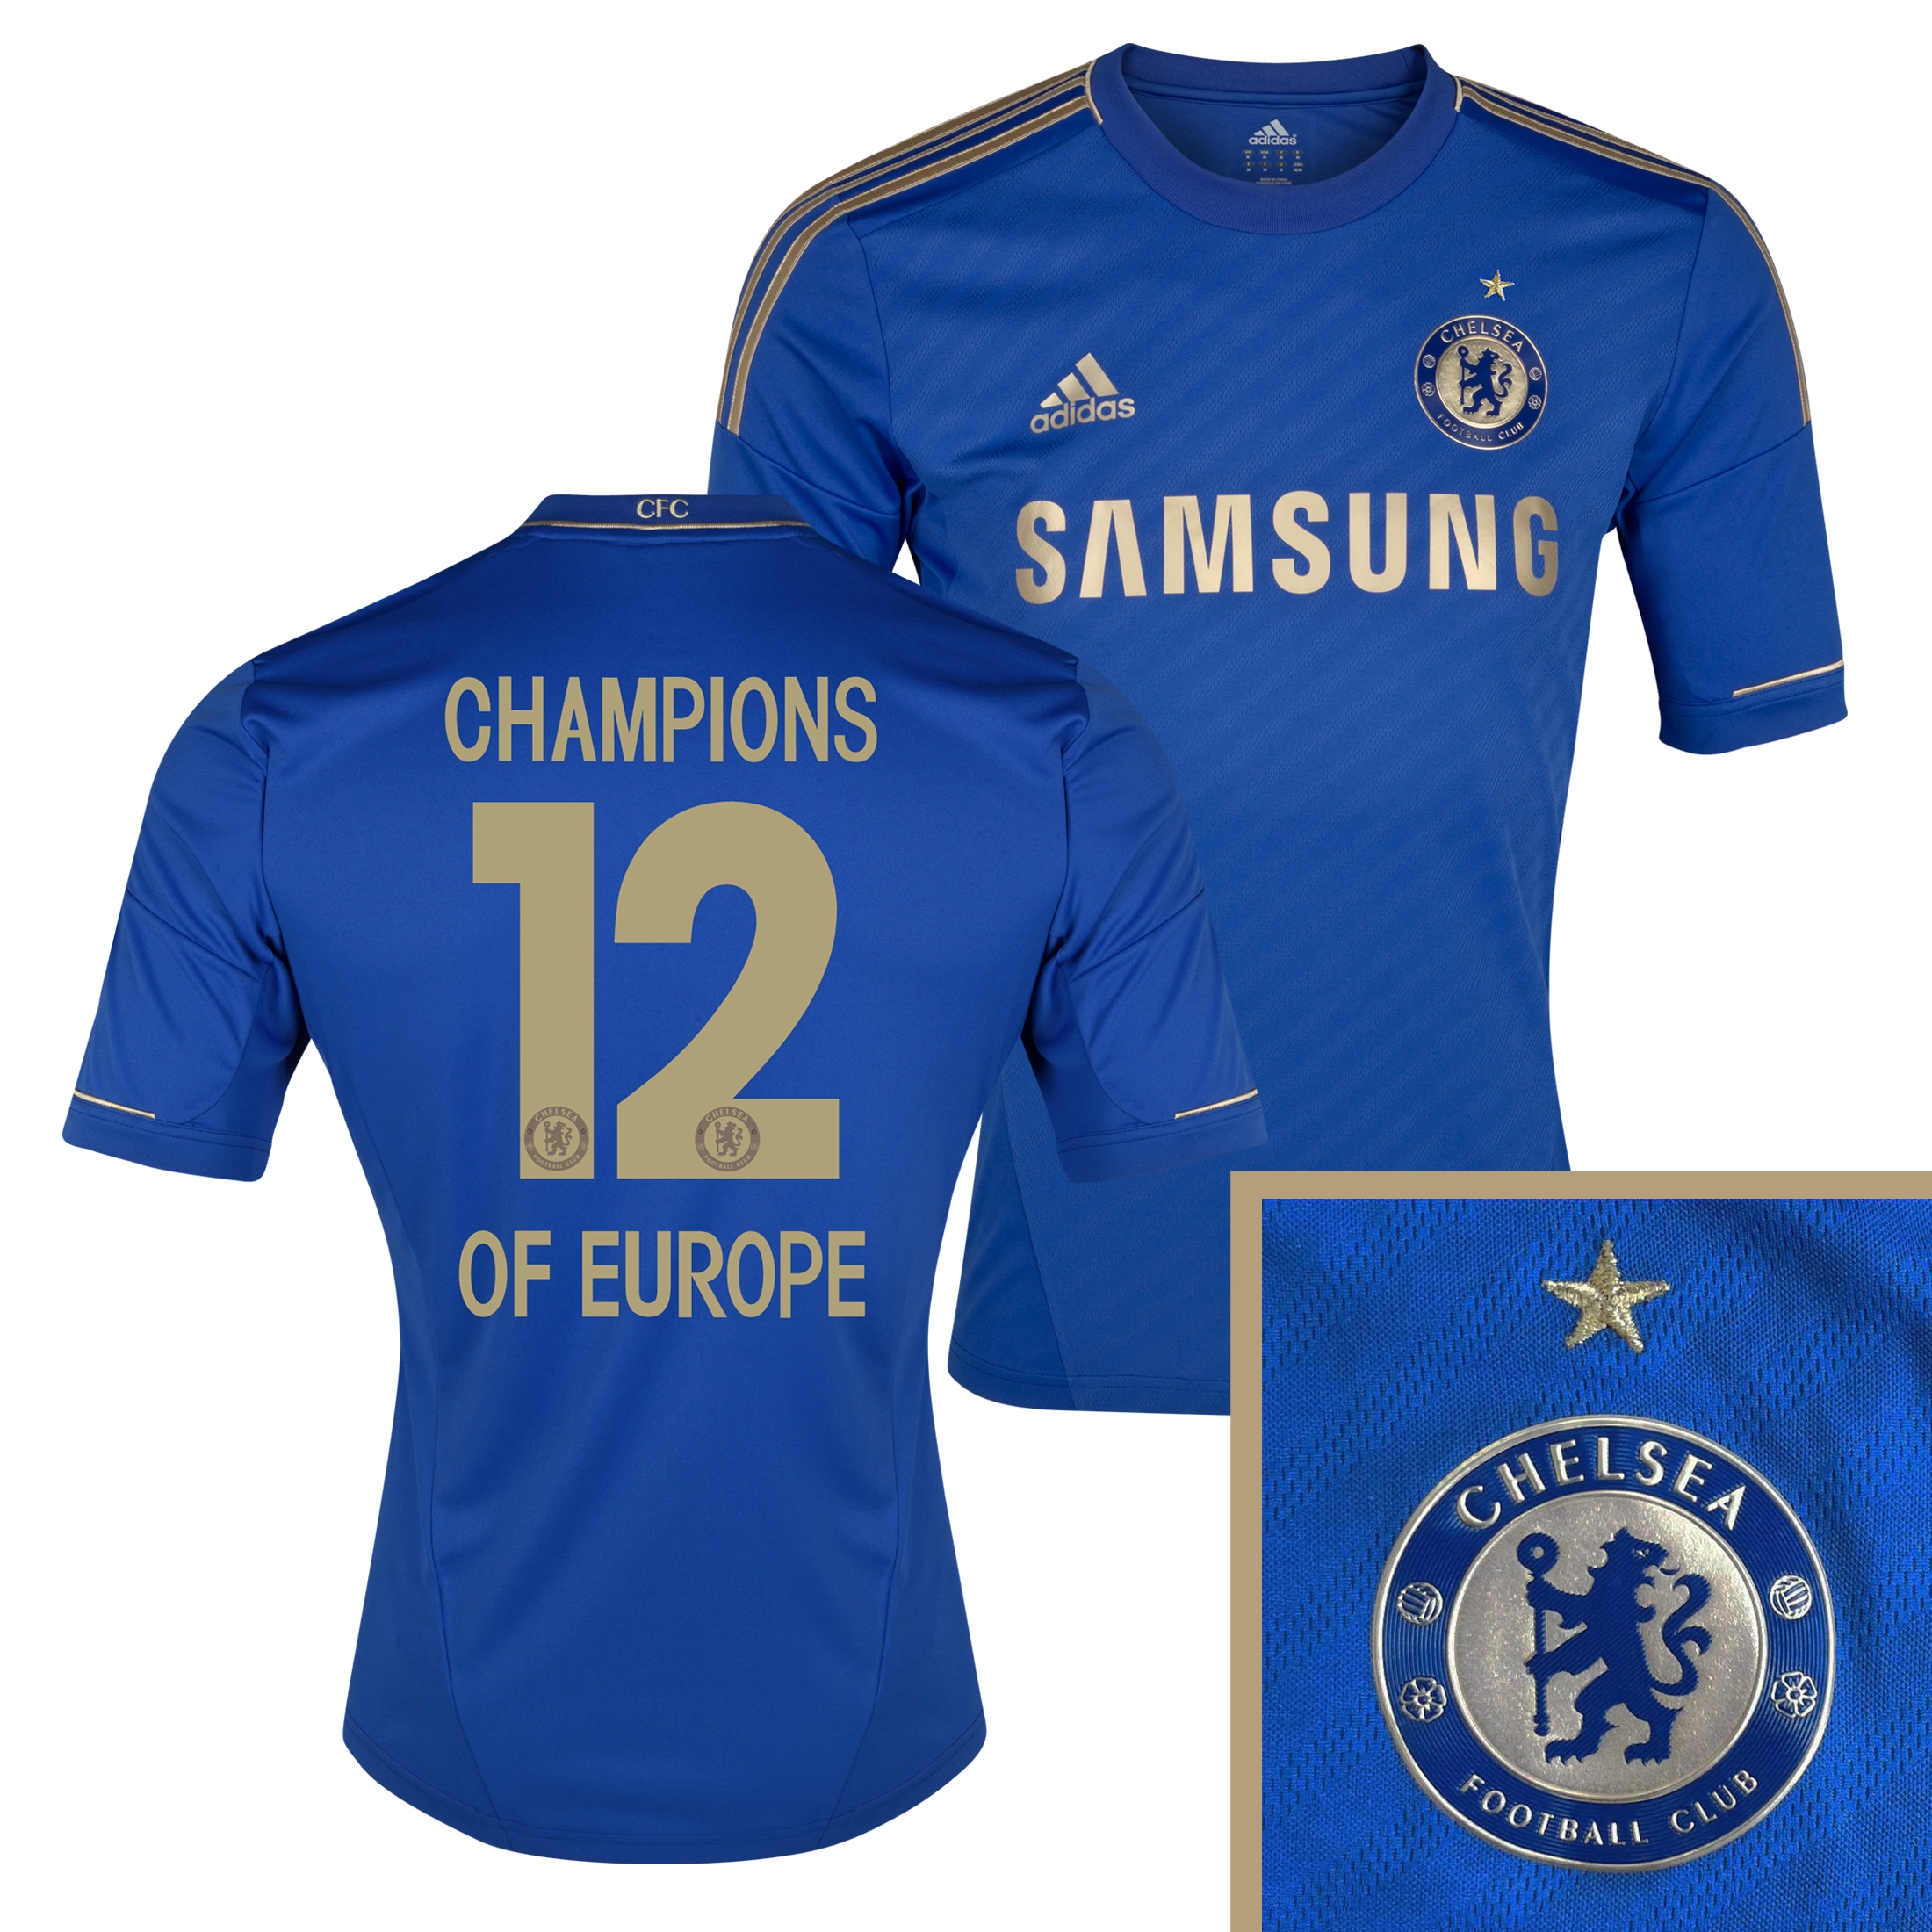 Chelsea Home Shirt 2012/13 - Kids with Champions 12 Printing including Gold Star